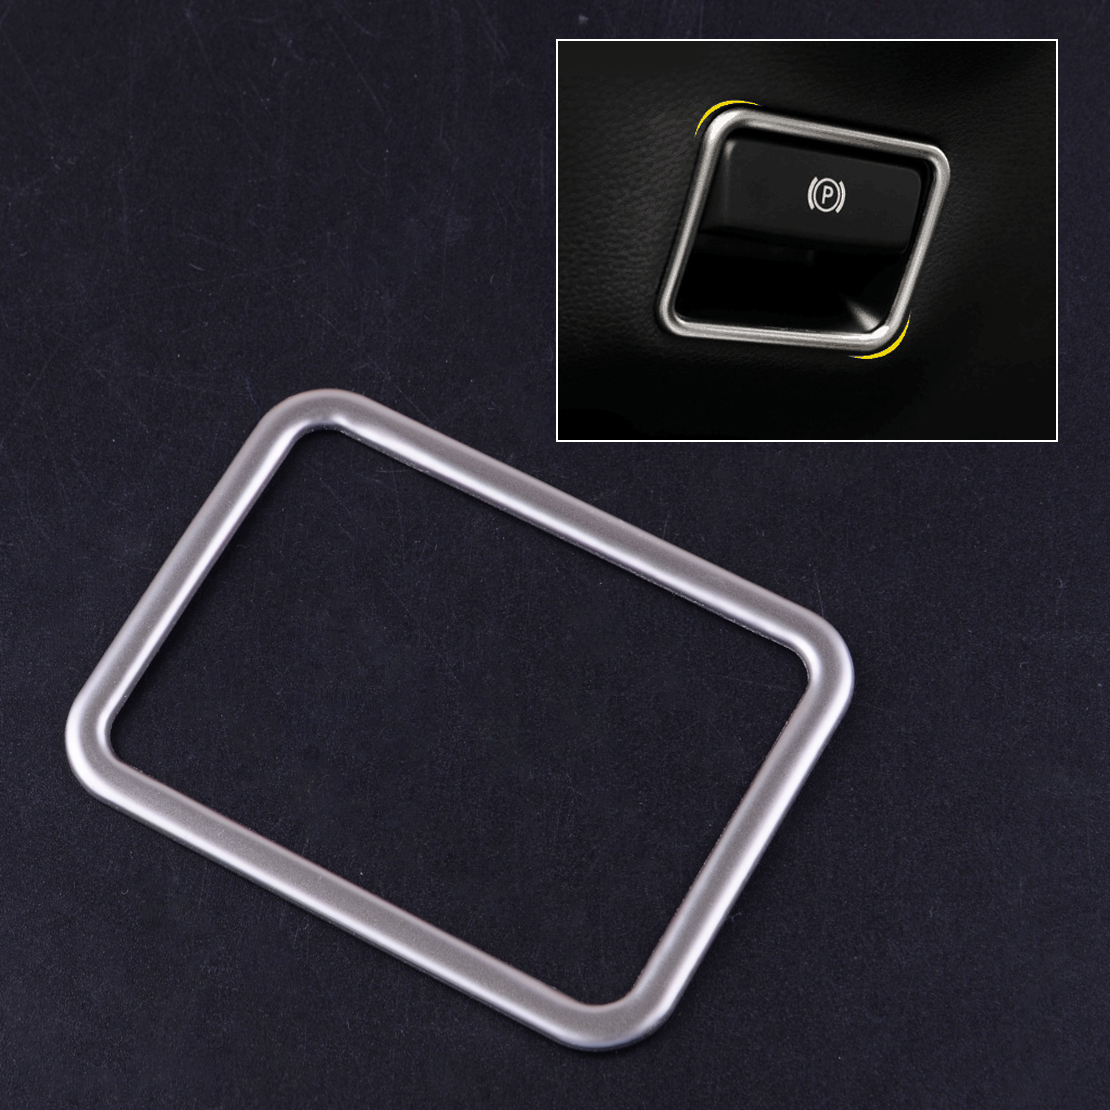 Silver Stainless Steel Parking Hand Brake Switch Sticker Cover Trim Fit for <font><b>Mercedes</b></font> Benz <font><b>W176</b></font> W246 X156 C117 image